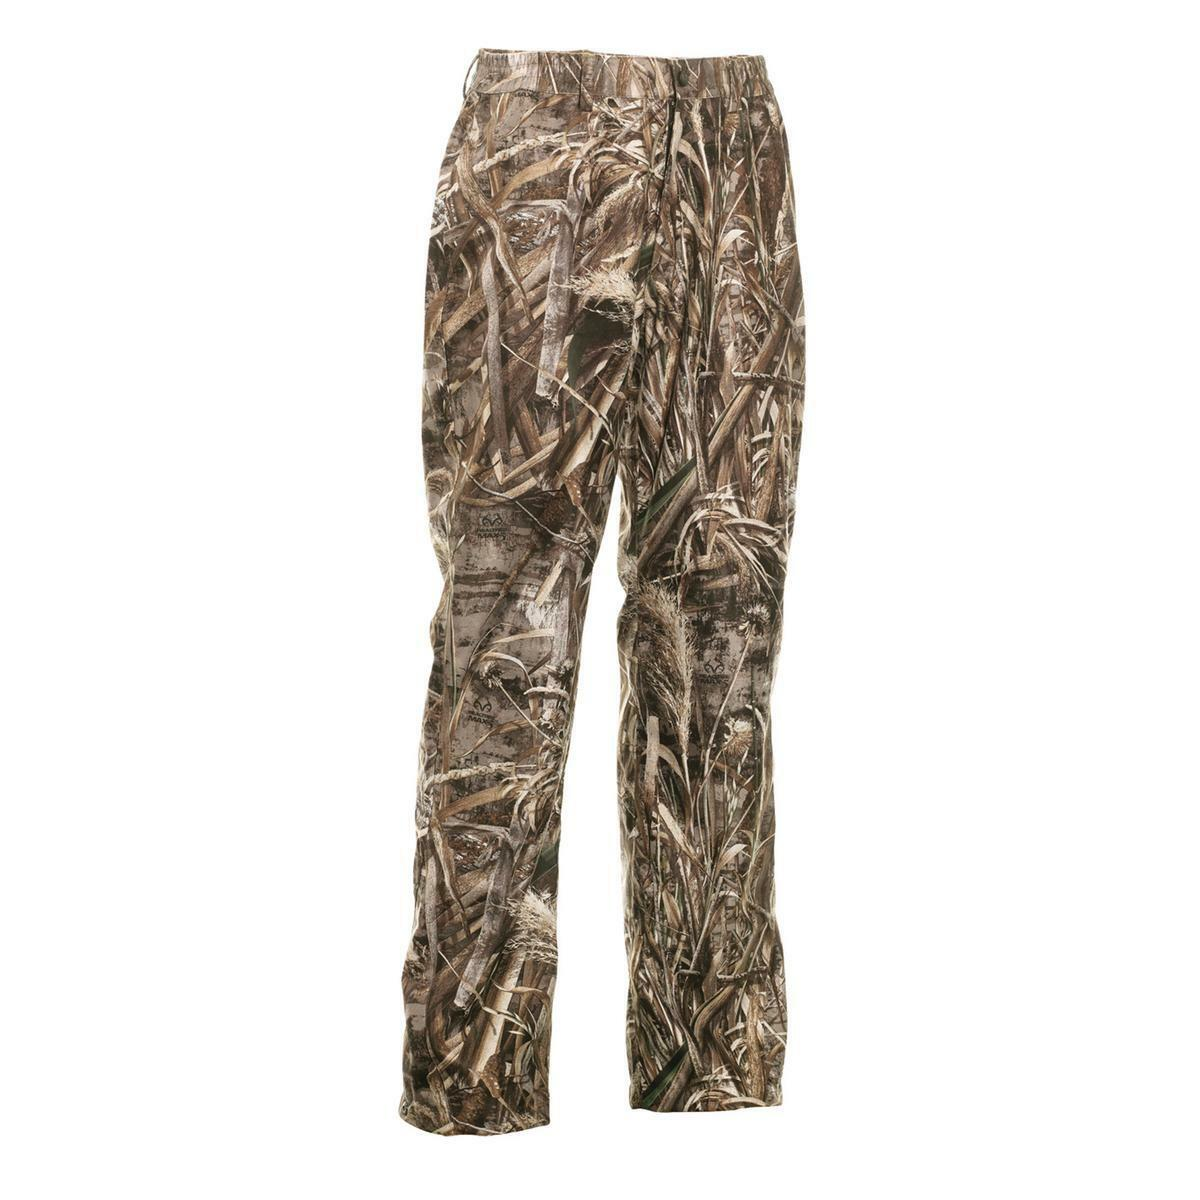 Deerhunter Avanti Trousers X-Small X-Small